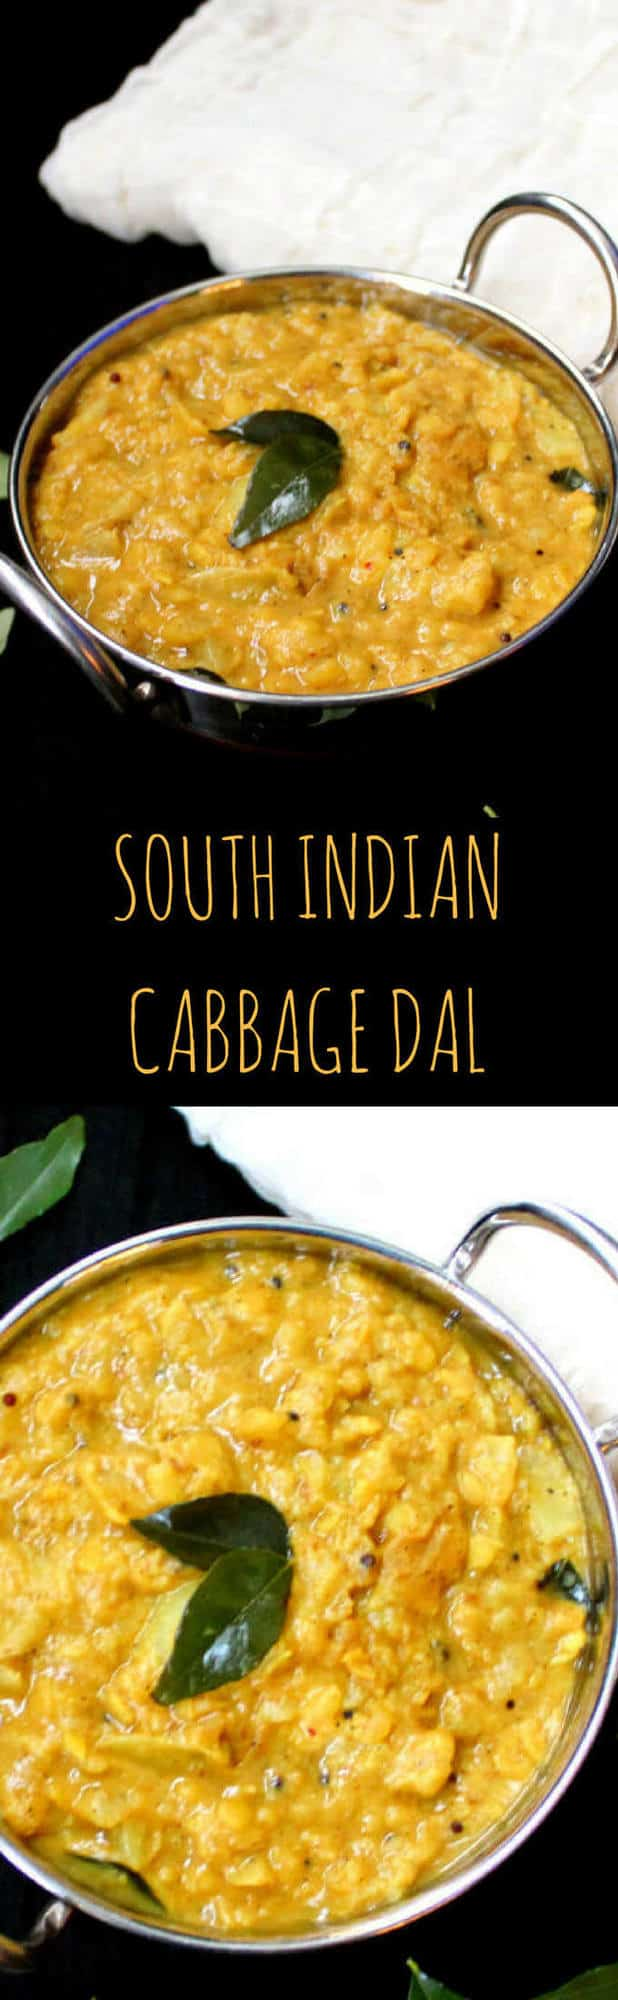 This South Indian Cabbage Dal, or Cabbage Kootu, is perfectly spiced and mellowed with coconut milk. Vegan, gluten-free, soy-free and nut-free - HolyCowVegan.net